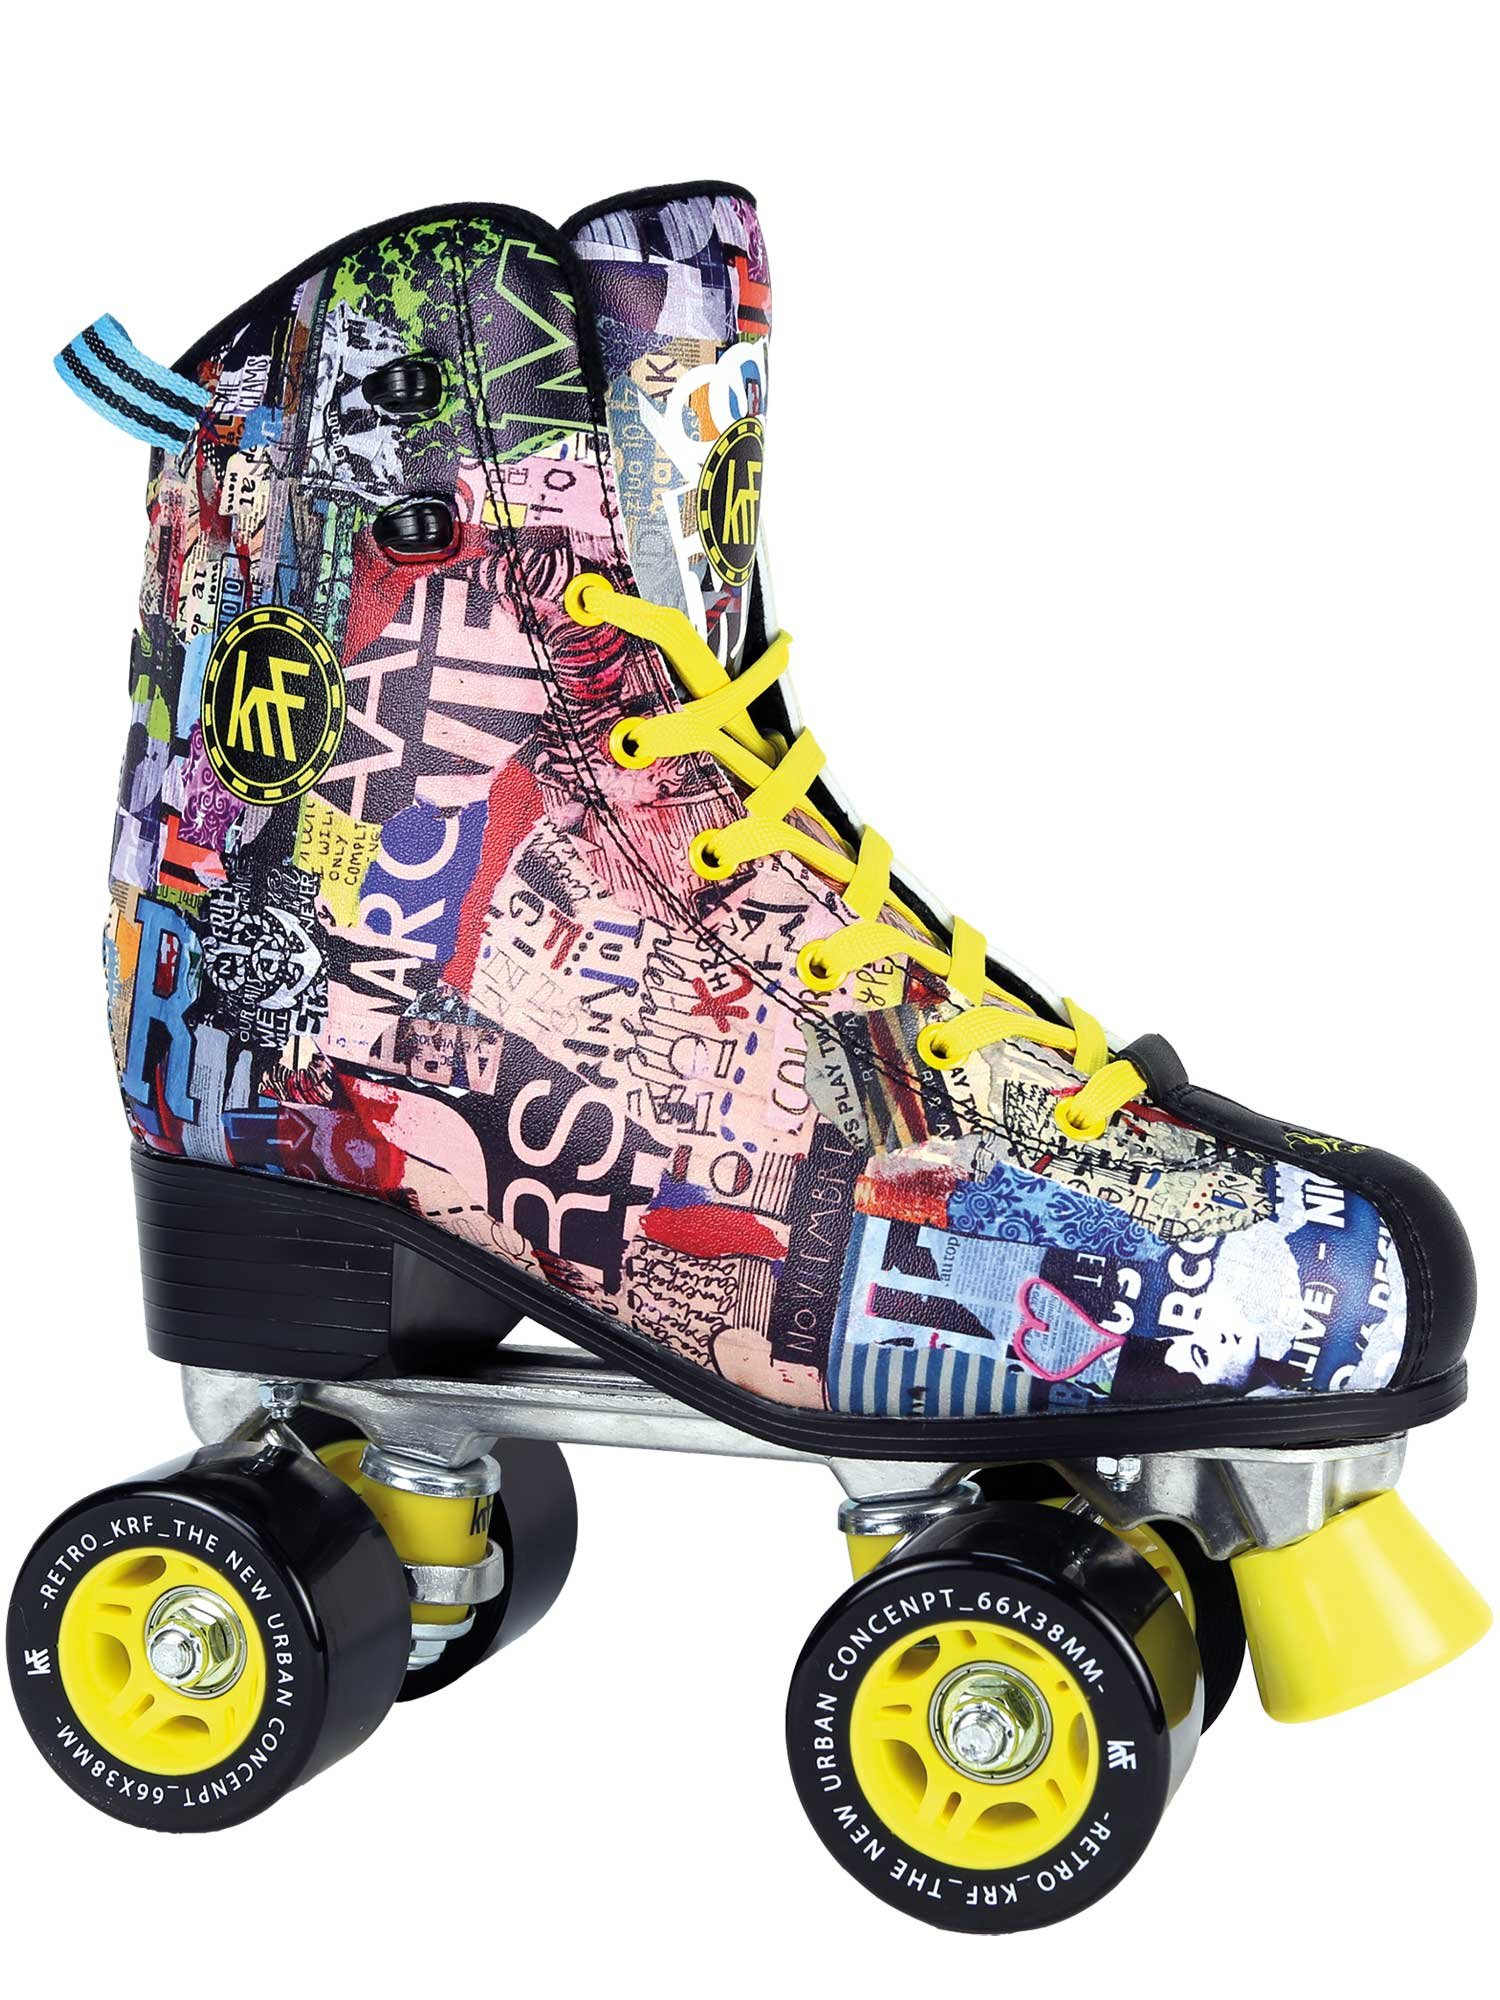 KRF The New Urban Concept Retro Art Fashion Junior Quad Roller Skates